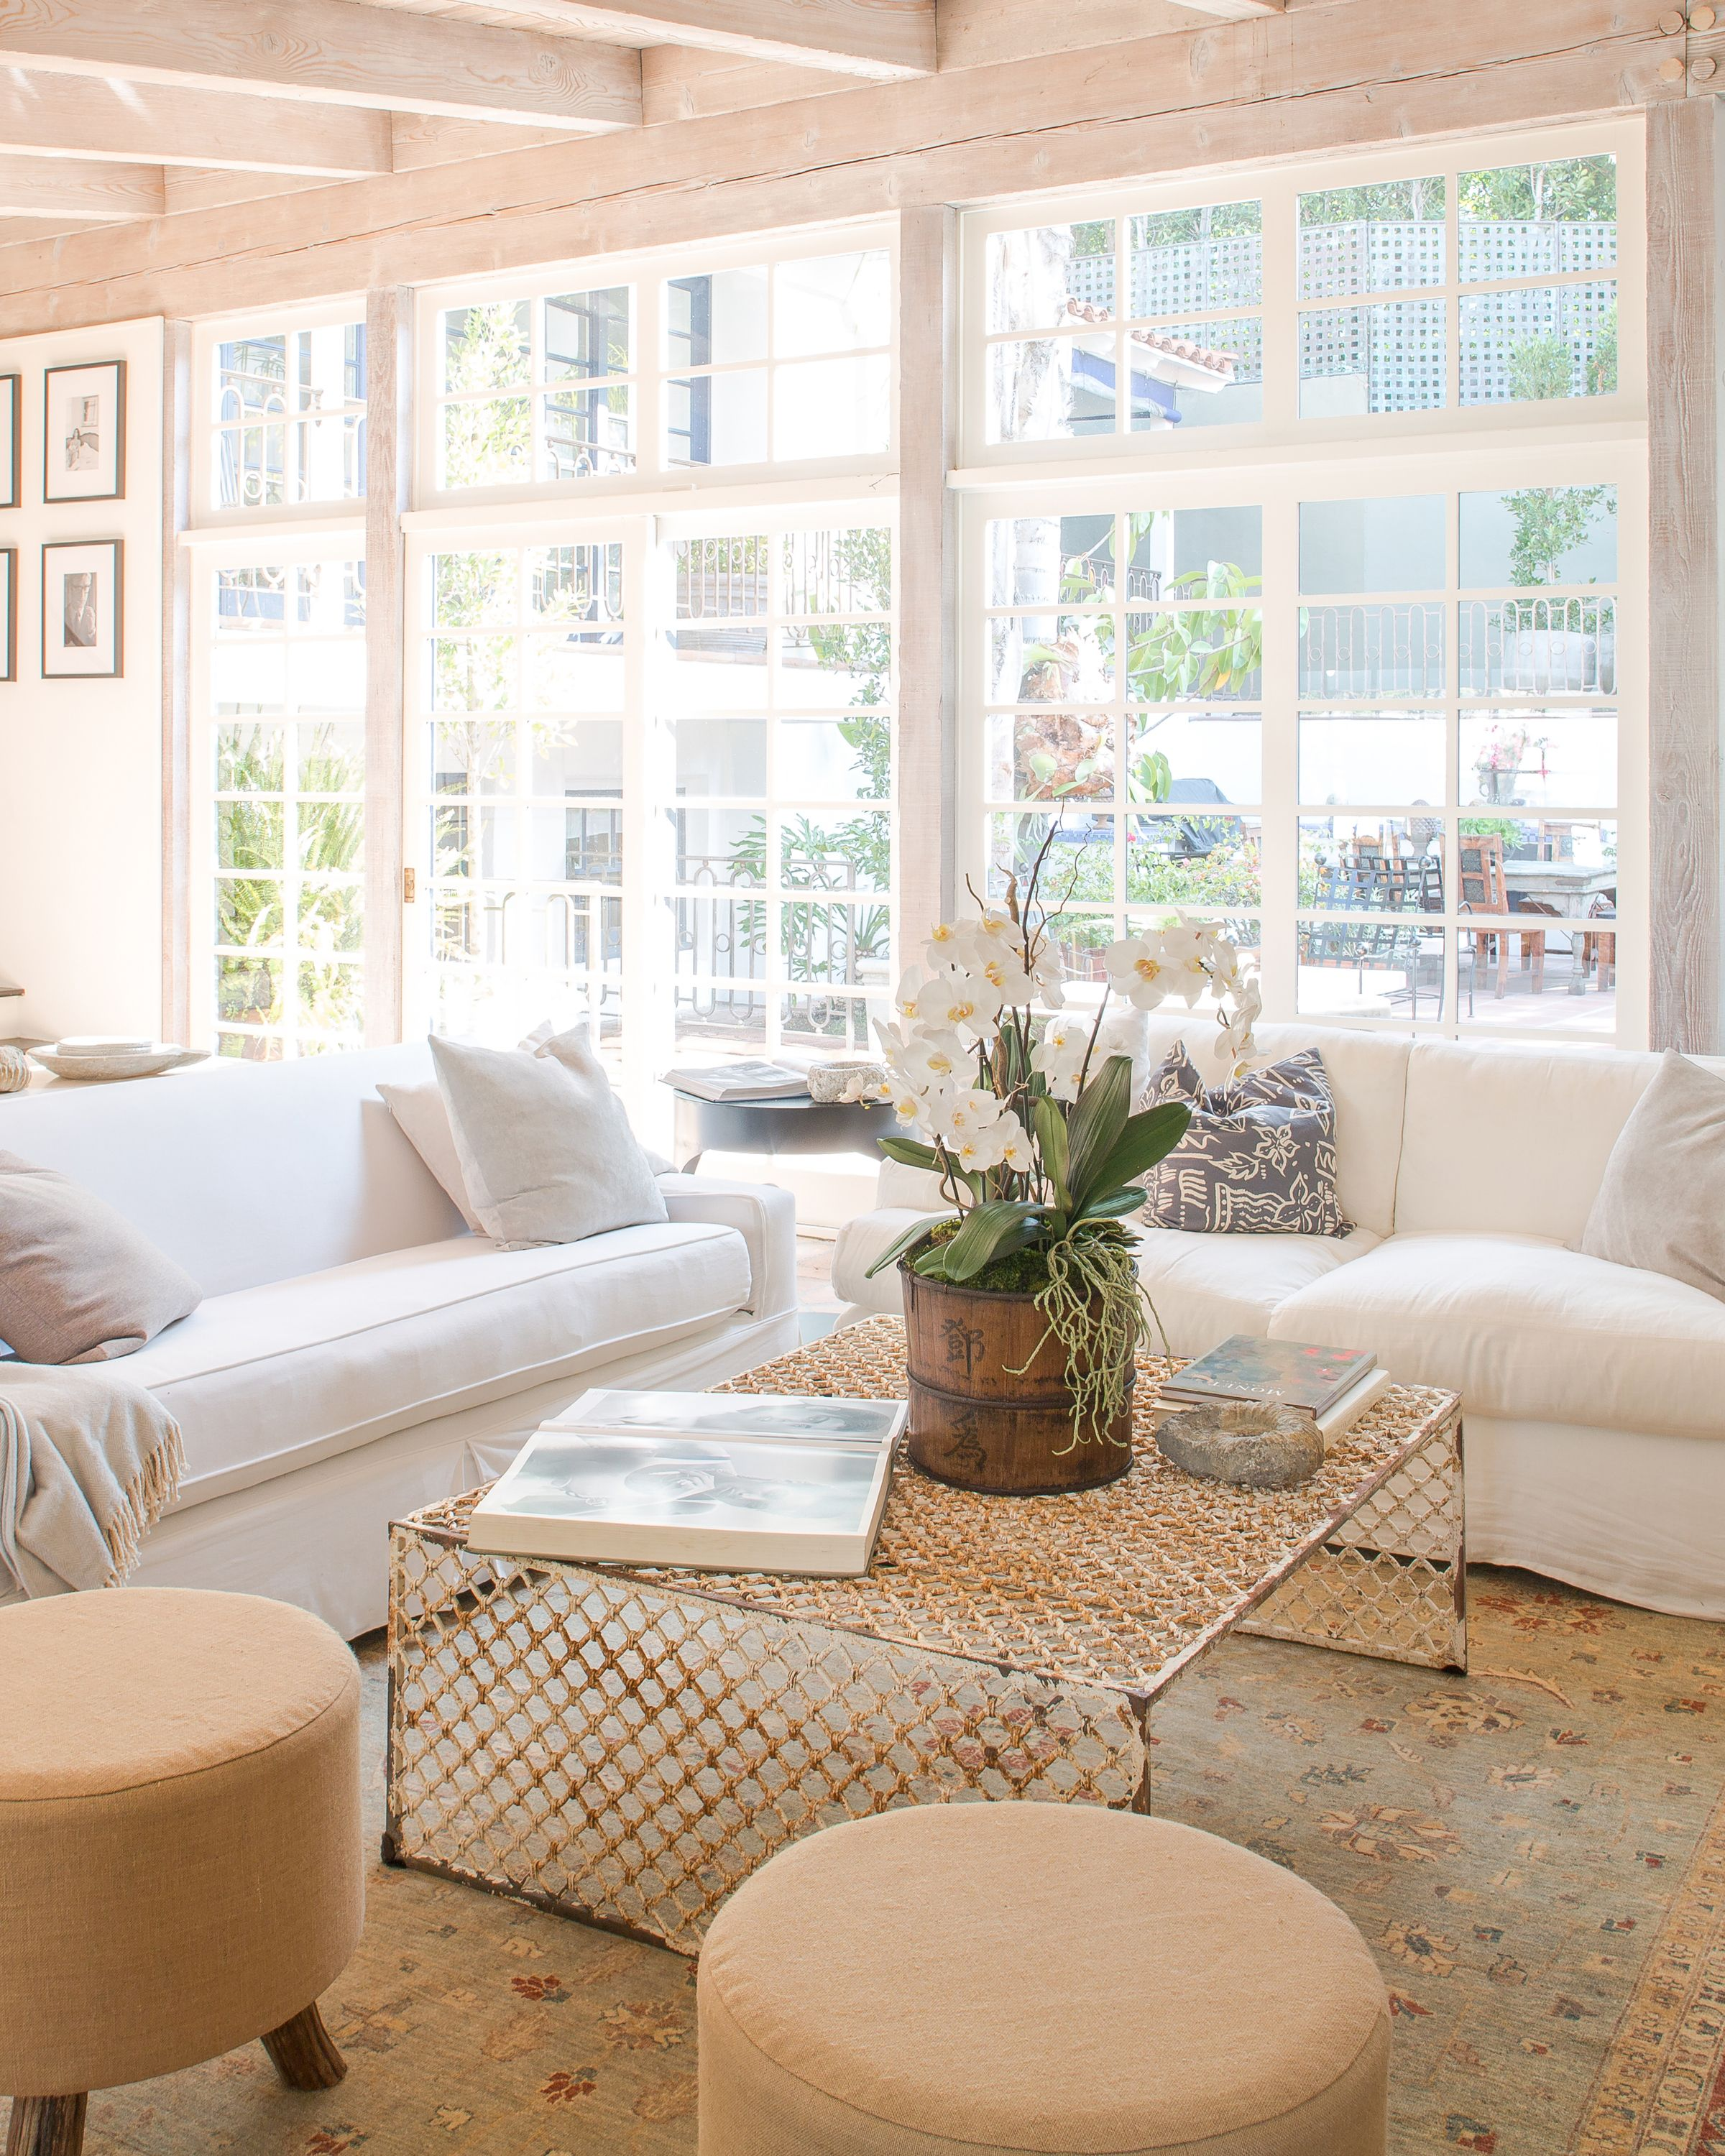 5 Furniture Arrangement Ideas That'll Make Your Home Look